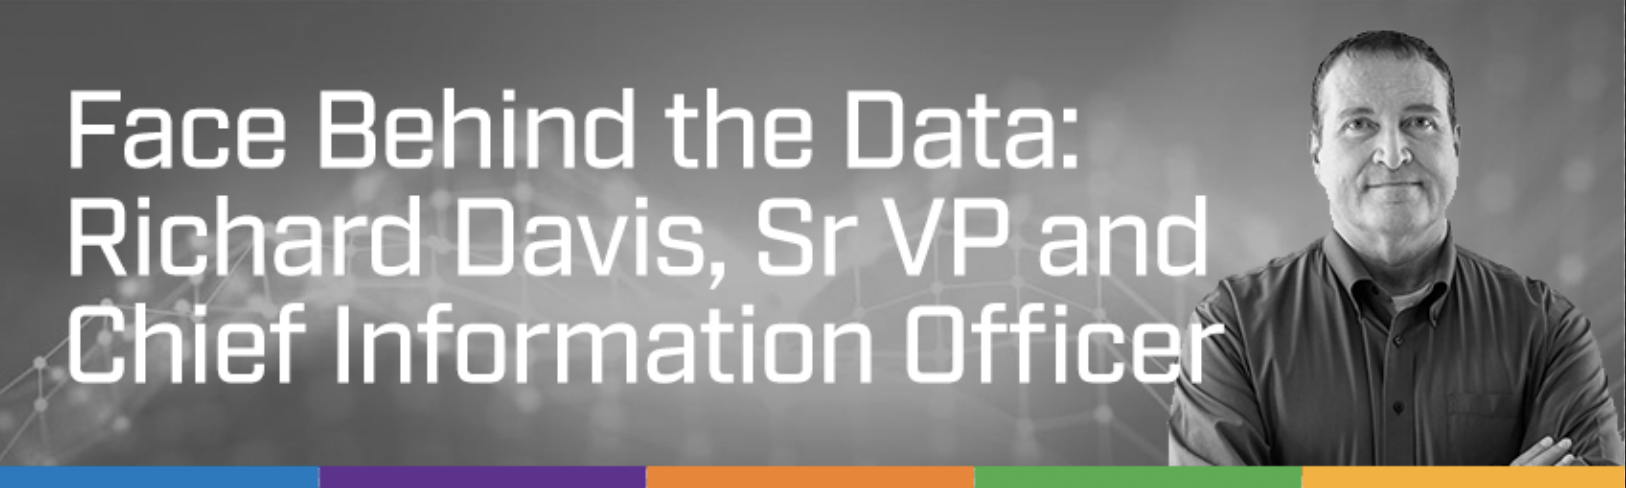 Richard Davis, Senior Vice President and Chief Information Officer, shares his passion for oil and gas data management in IT infrastructure and multi-cloud computing.